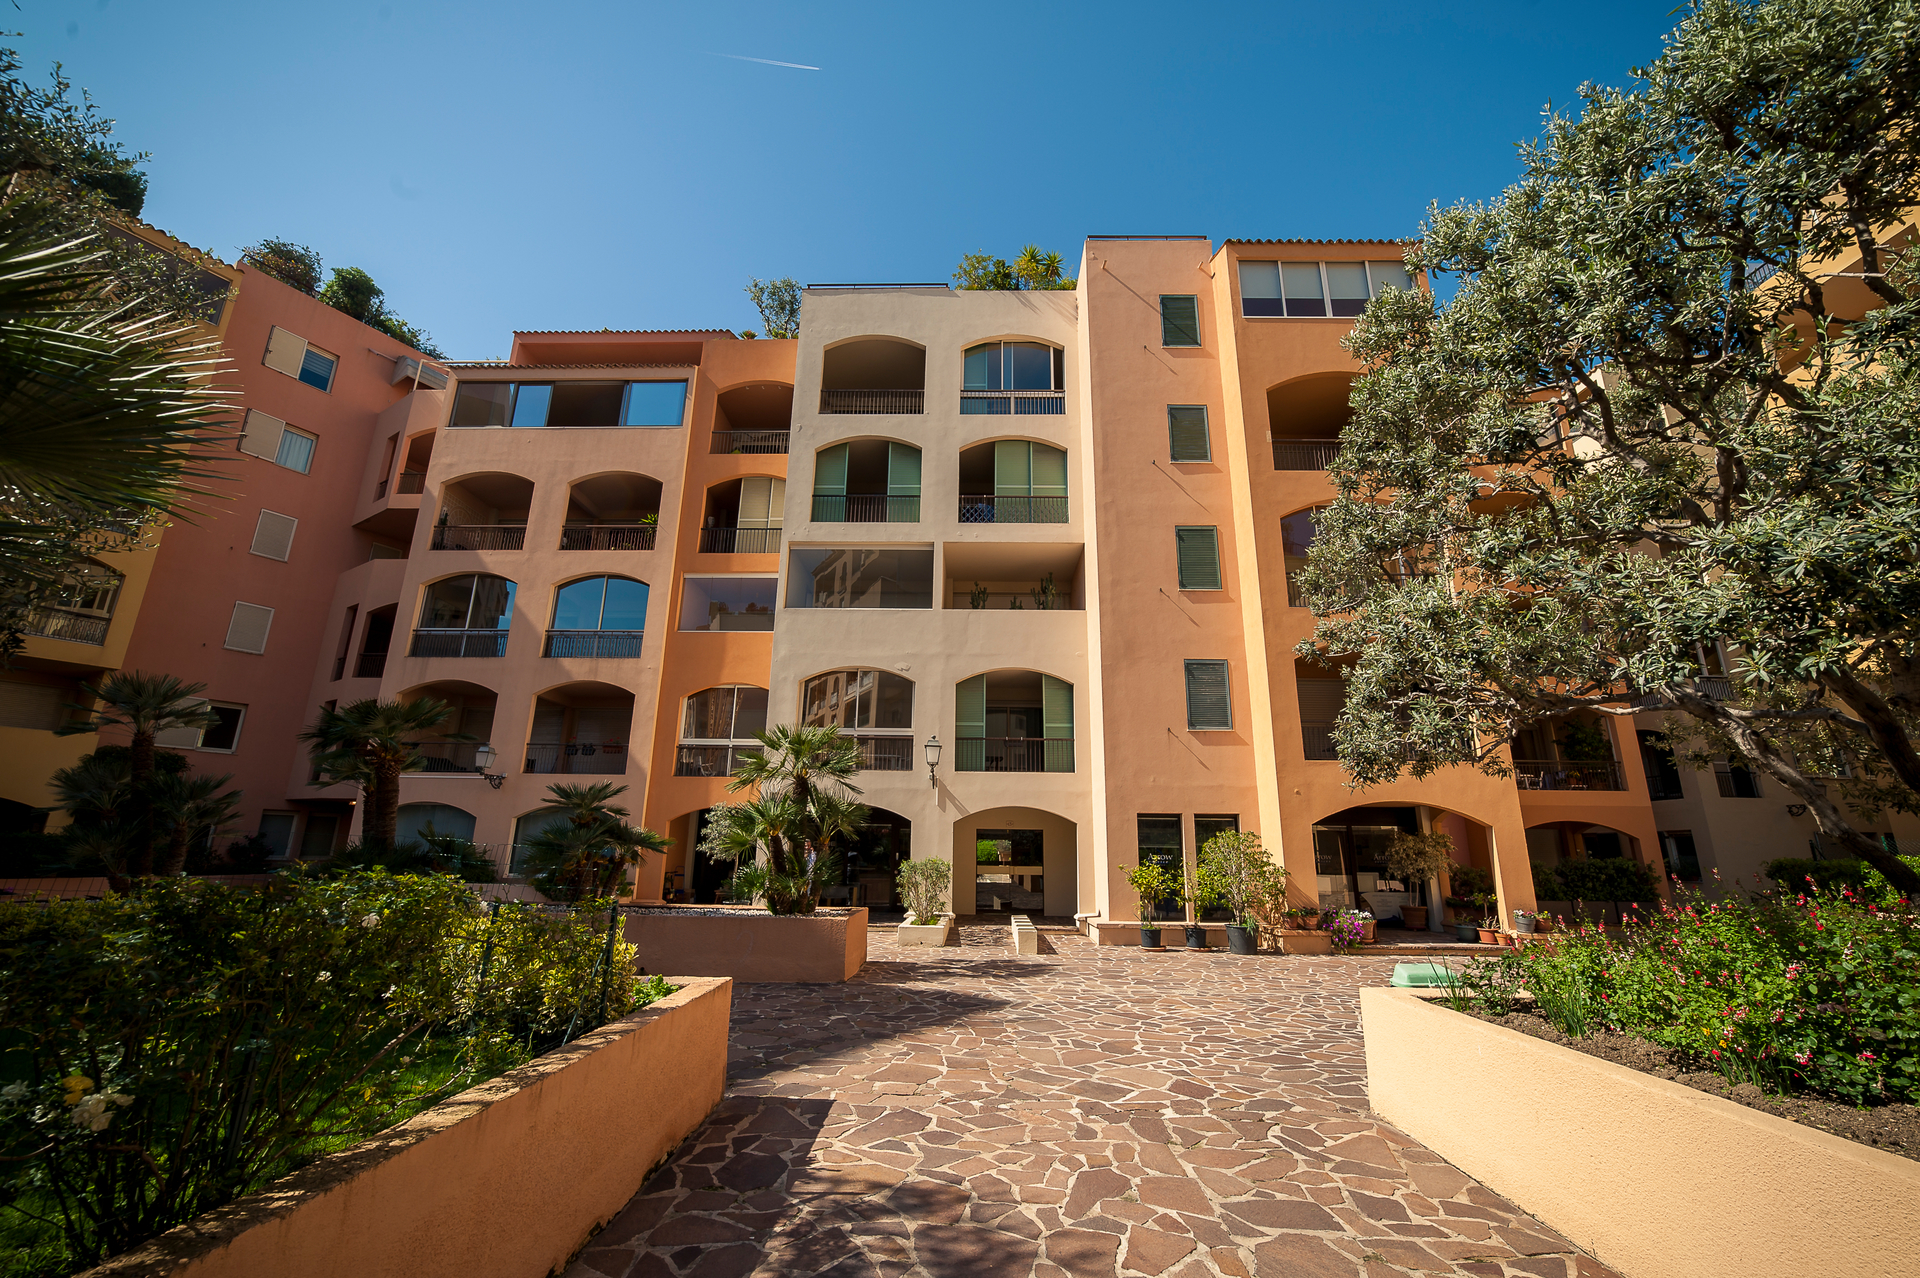 Studio apartment in Fontvieille - Le Donatello - Offices for sale in Monaco